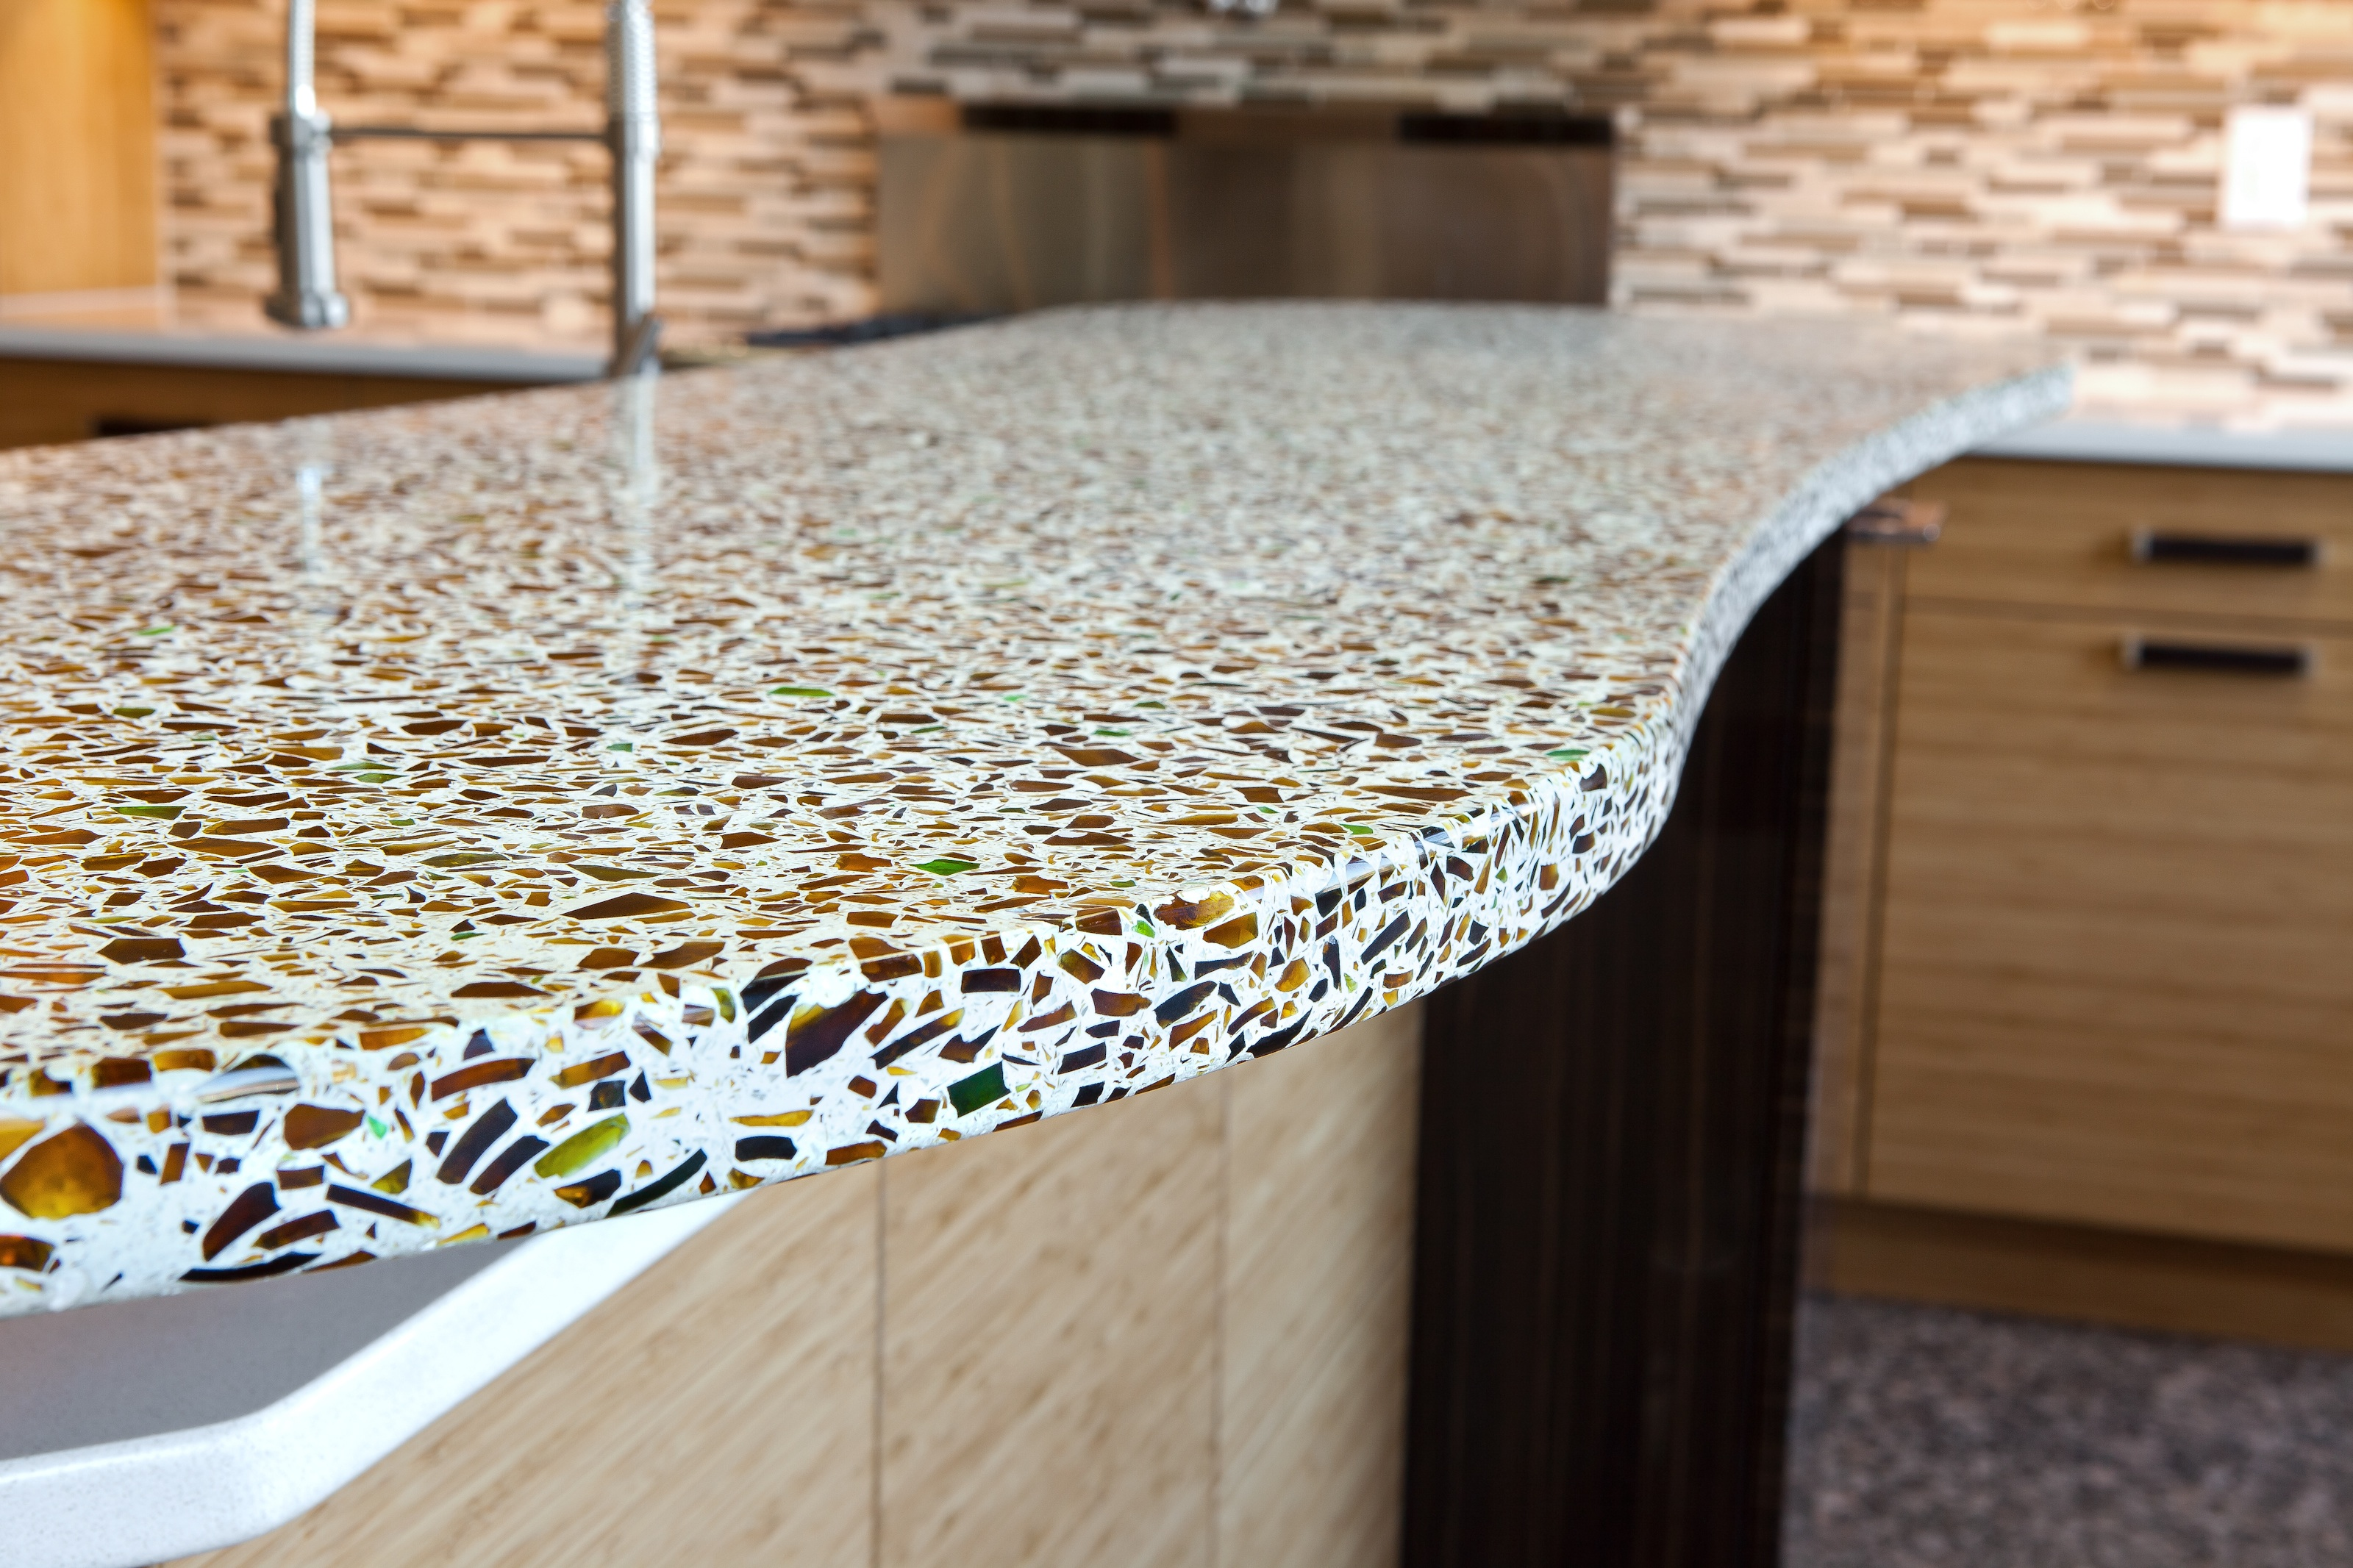 greenbuild exhibitor spotlight curava eco news work kitchen counters made from recycled glass recycled glass and cement kitchen counters